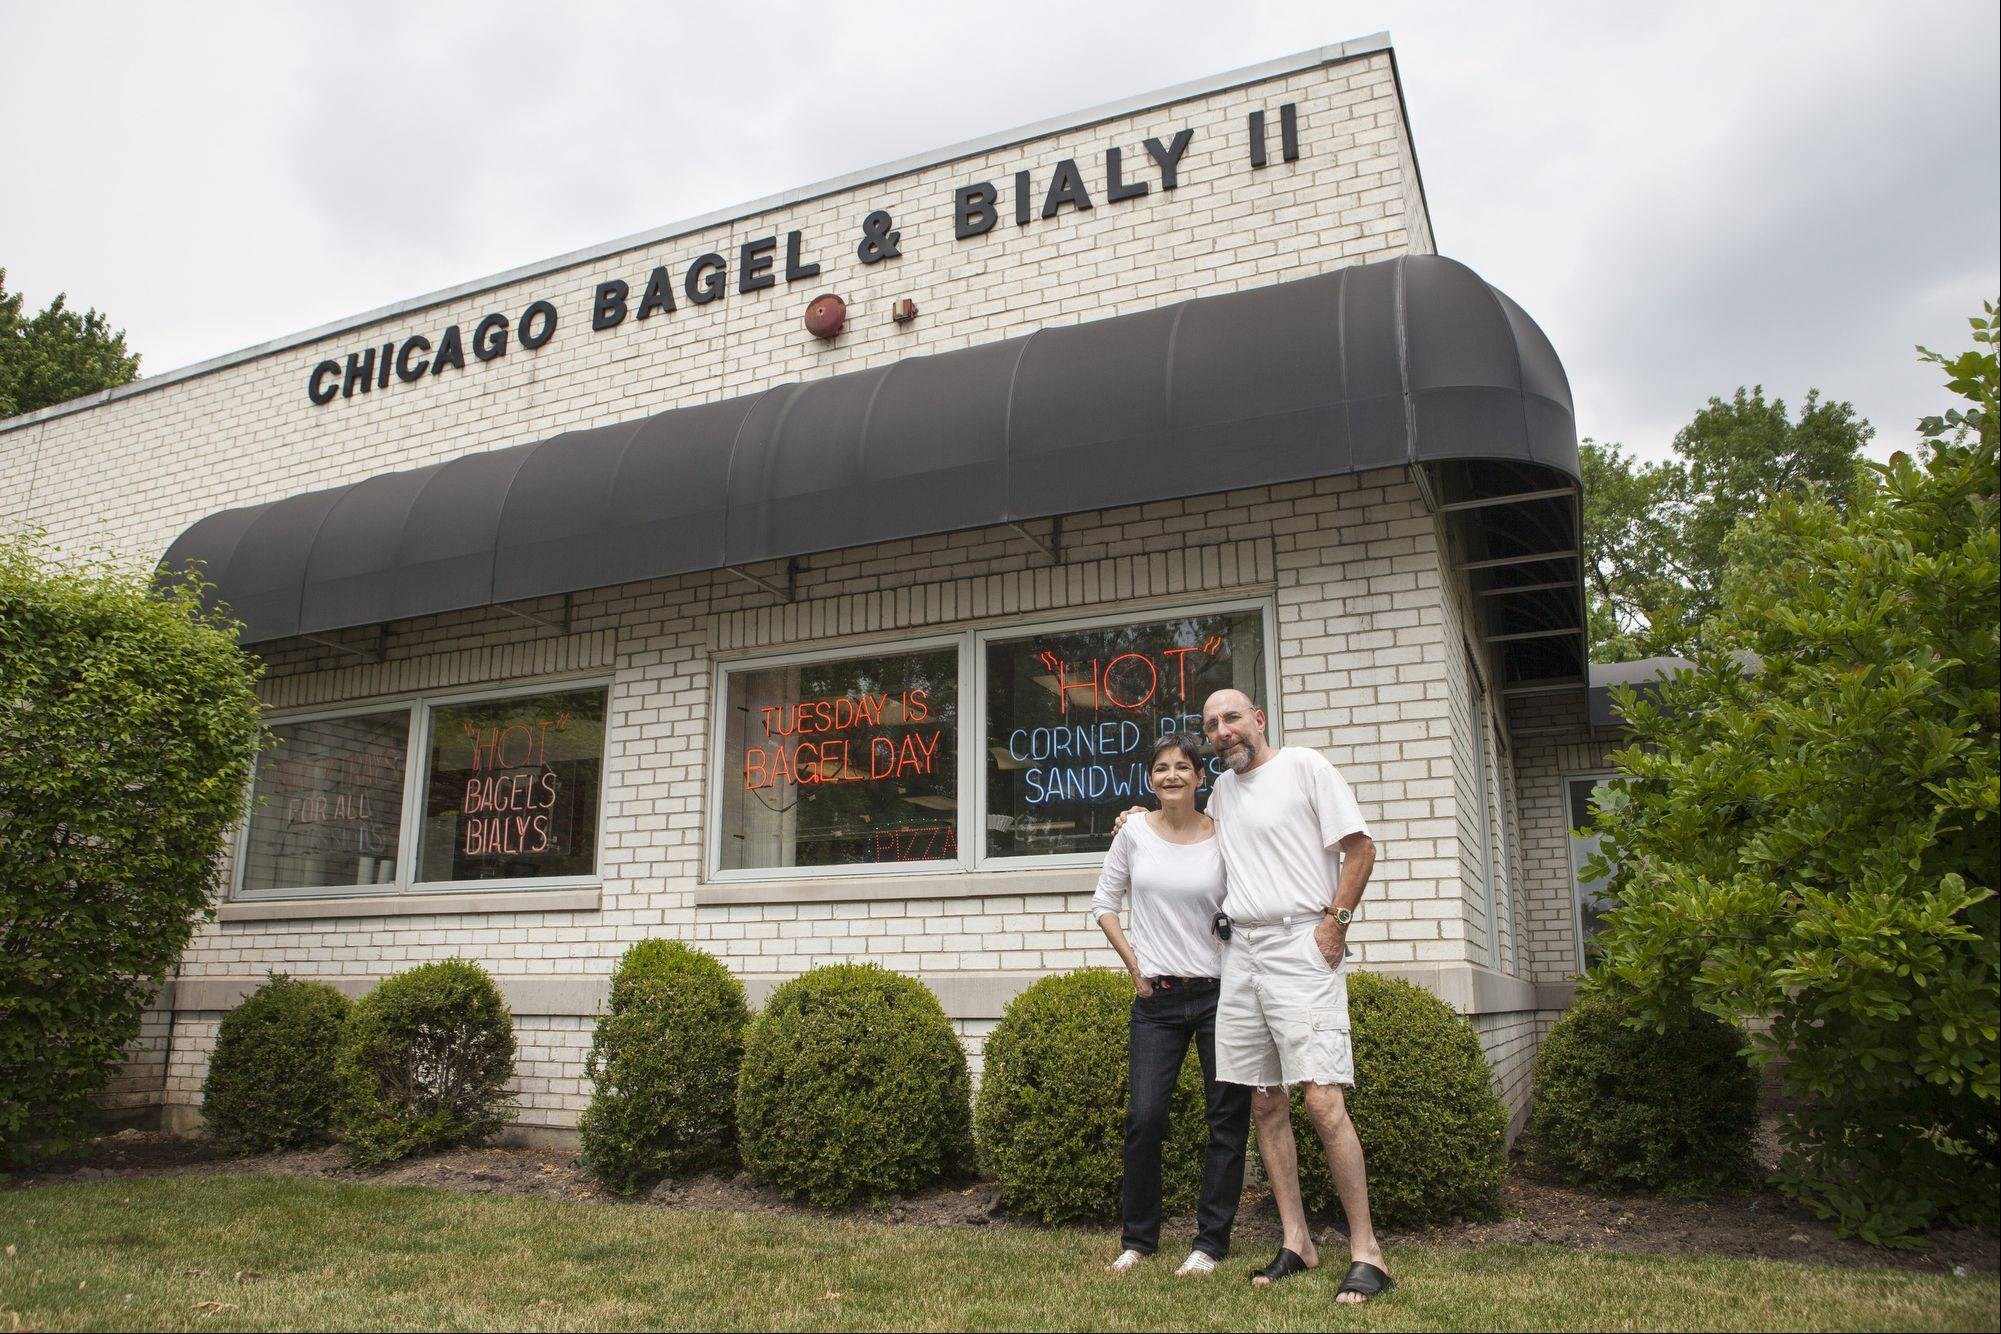 Harold and Sharon Harkavy, owners of Chicago Bagel and Bialy, pose for a portrait outside their Wheeling business turns 30 in July.